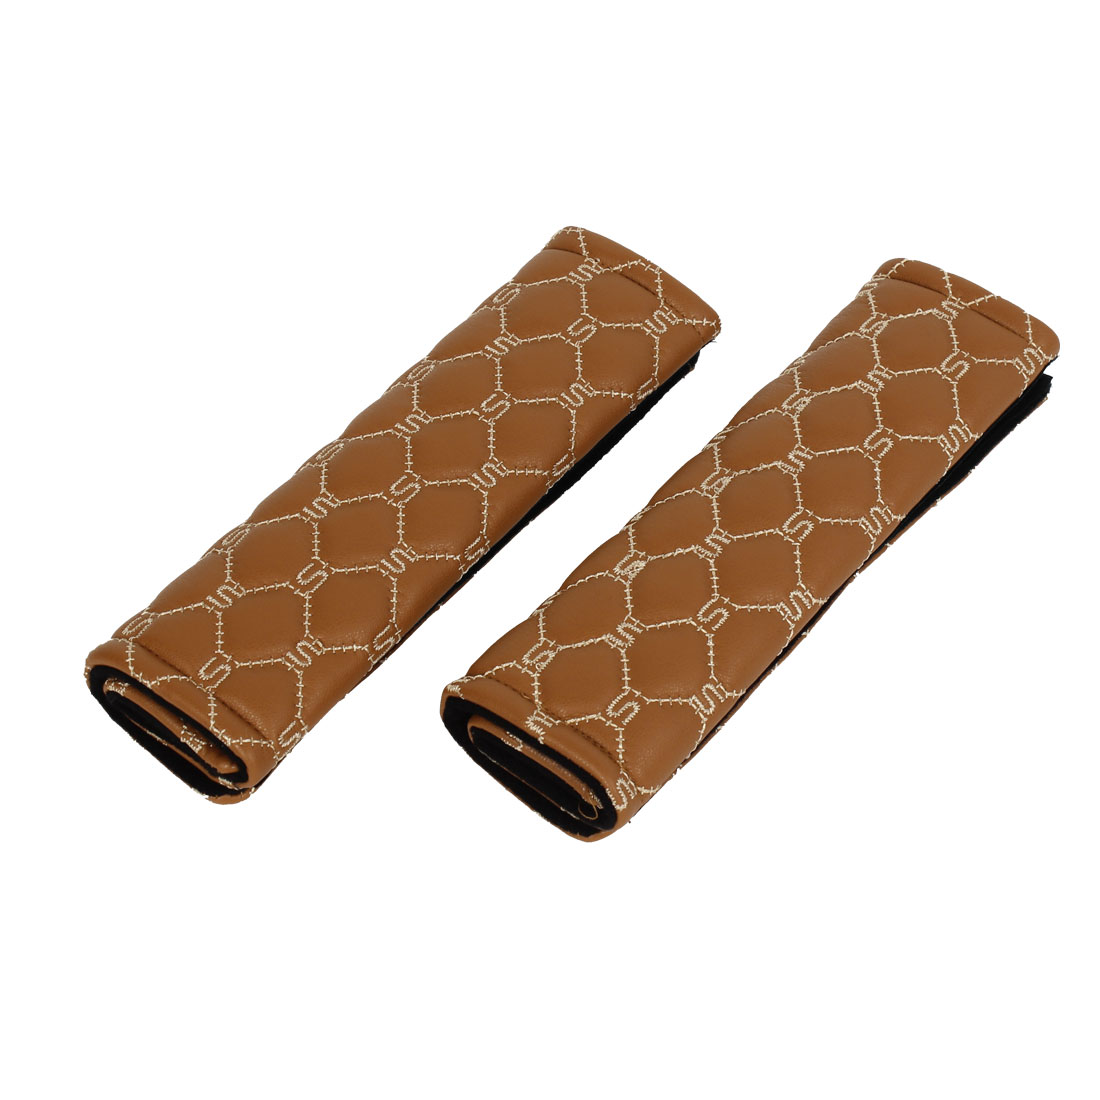 Car Auto 225mm Long Brown Faux Leather Safety Seatbelt Shoulder Pad Cover 2 Pcs